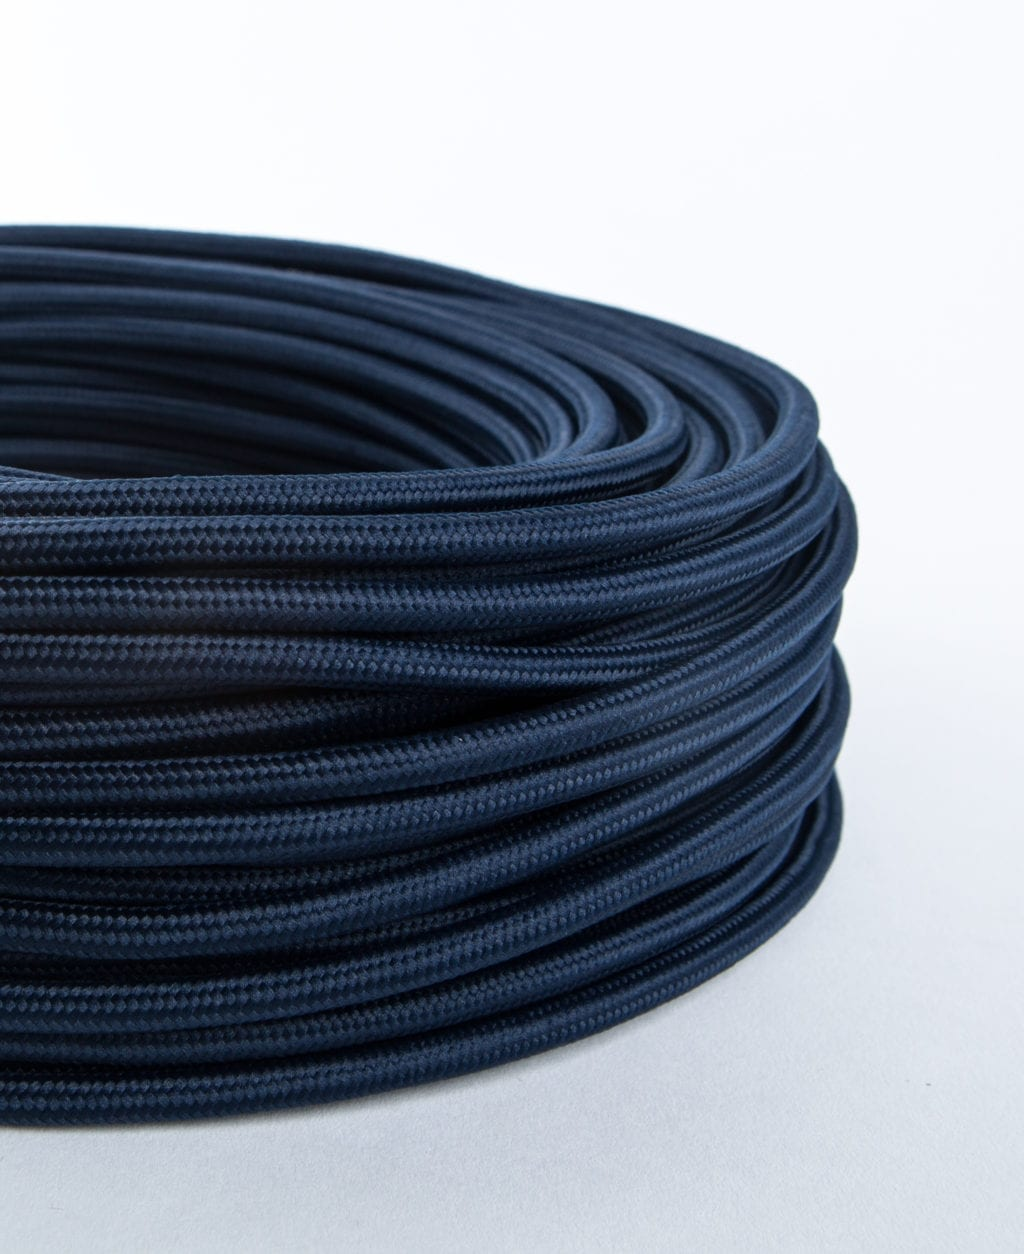 closeup navy blue smooth fabric cable against white background